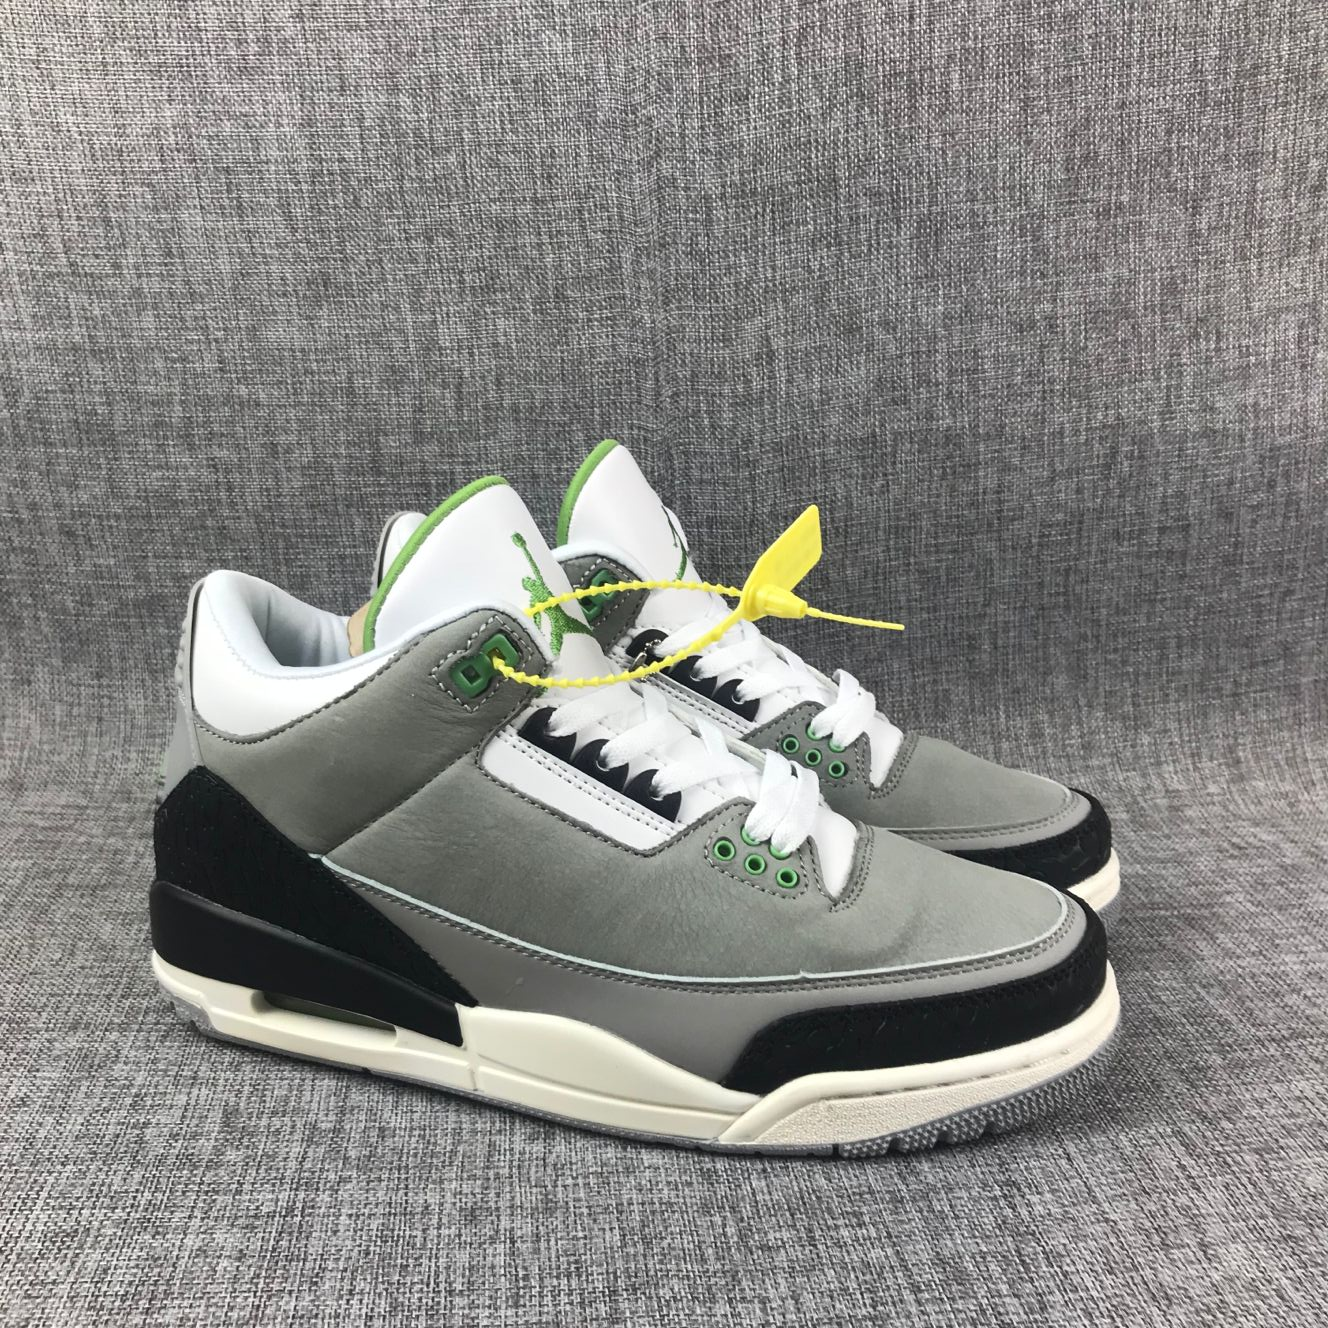 Air Jordan 3 Chlorophyll Green Black White Shoes